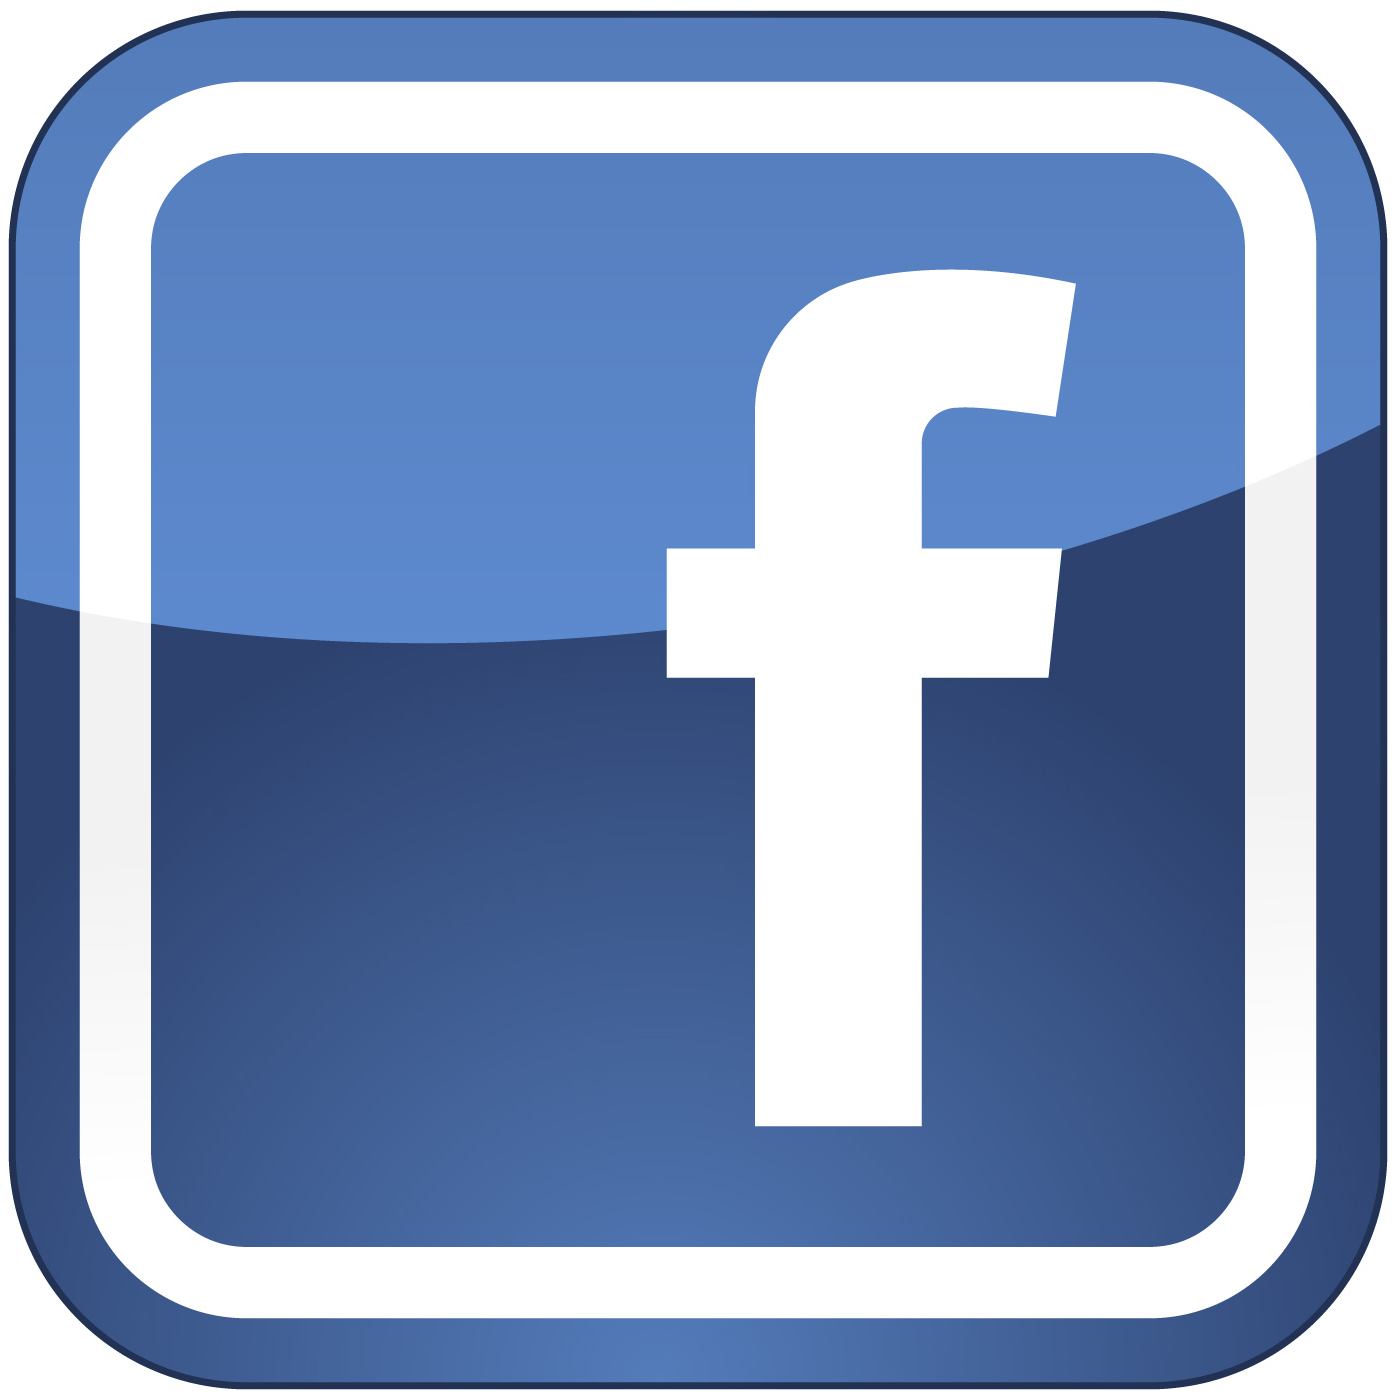 facebook-logo-icon-vectorcopy-big_copypng